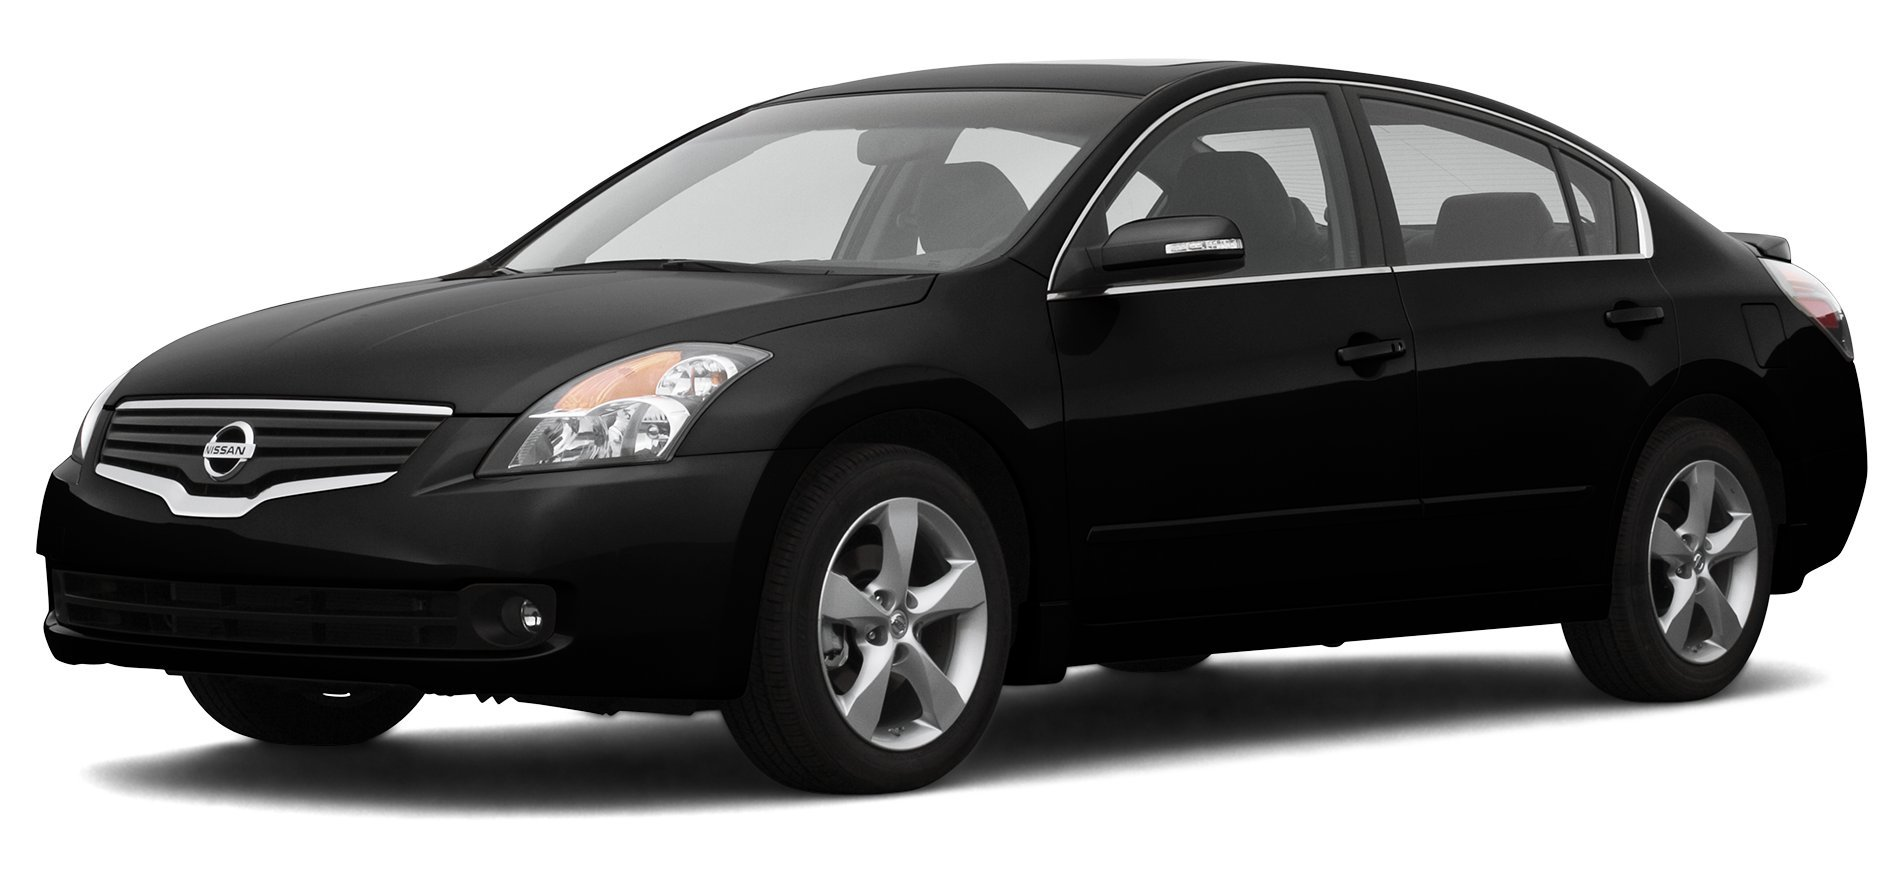 2007 nissan altima reviews images and specs vehicles. Black Bedroom Furniture Sets. Home Design Ideas